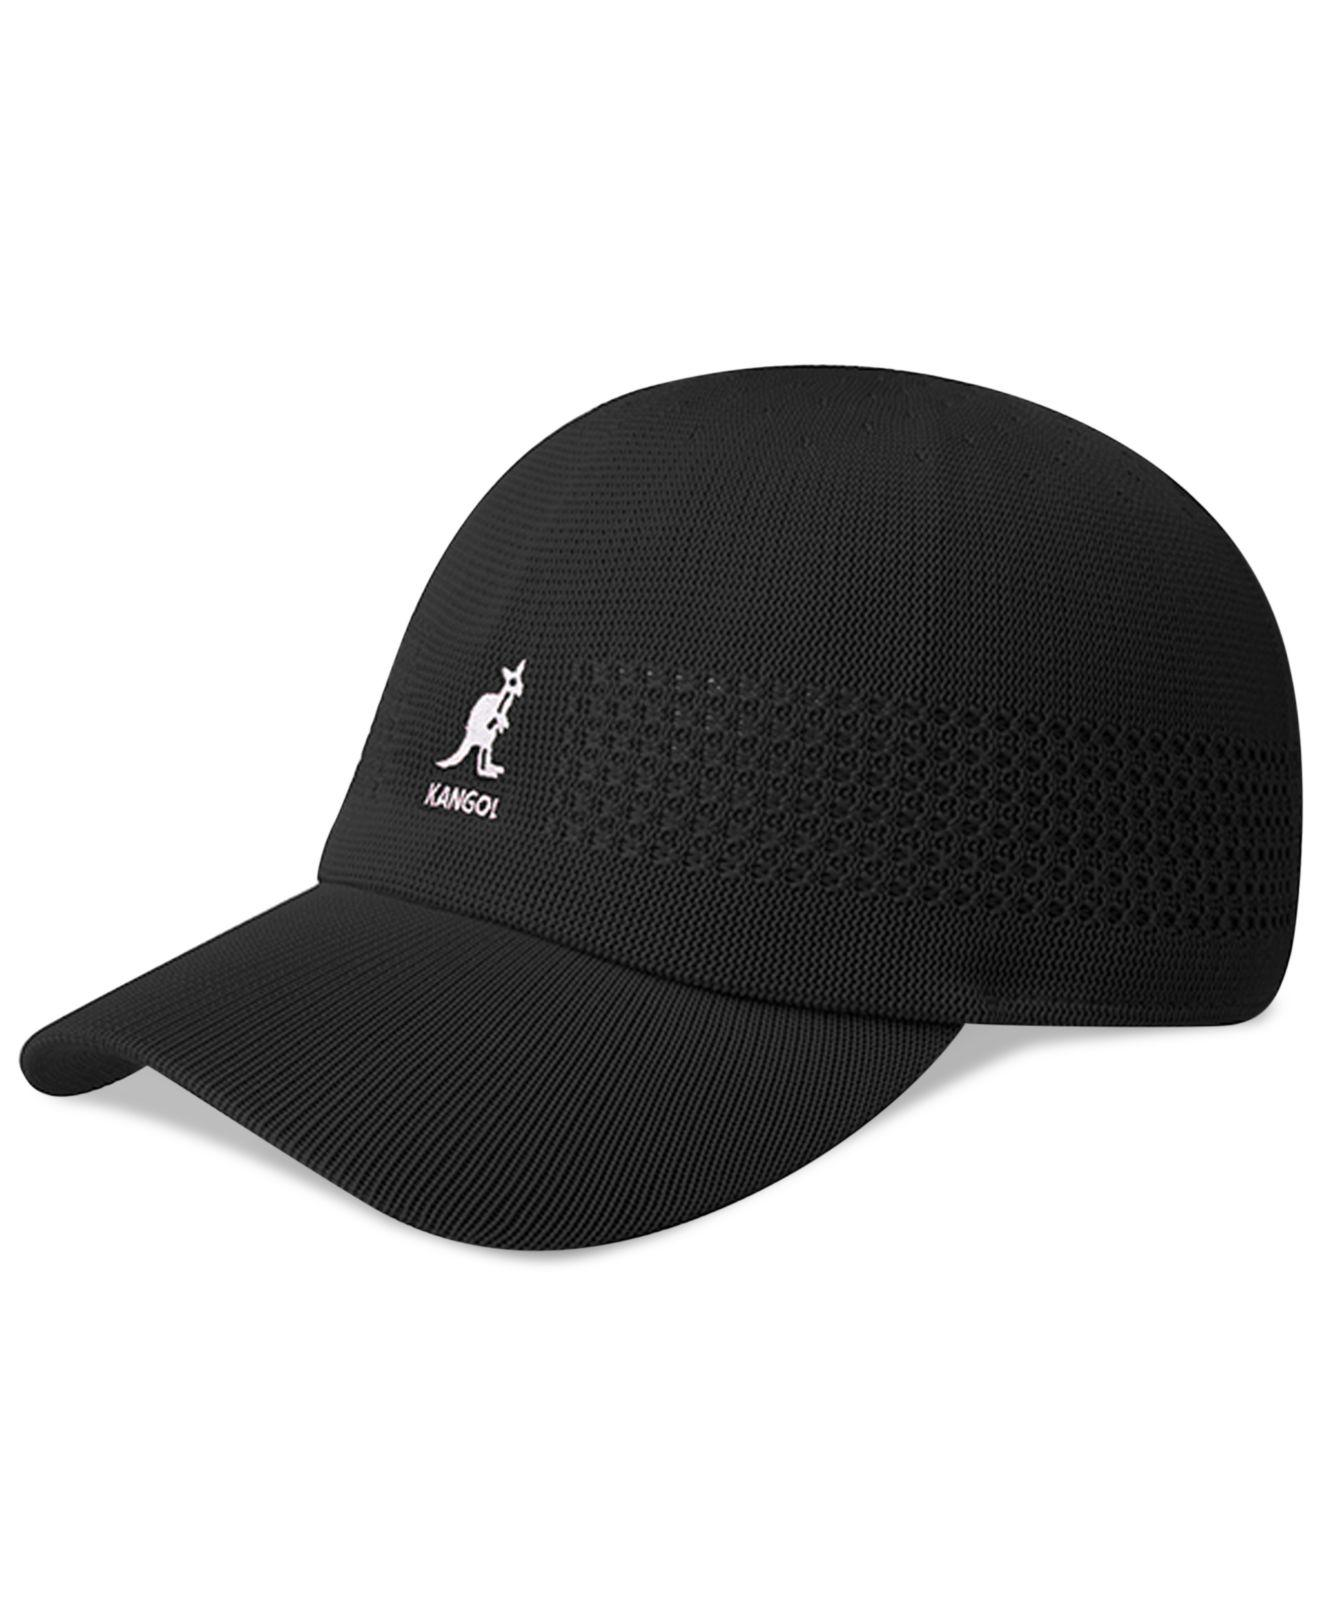 a84d9583dab Lyst - Kangol Men s Tropic Ventair Spacecap in Black for Men